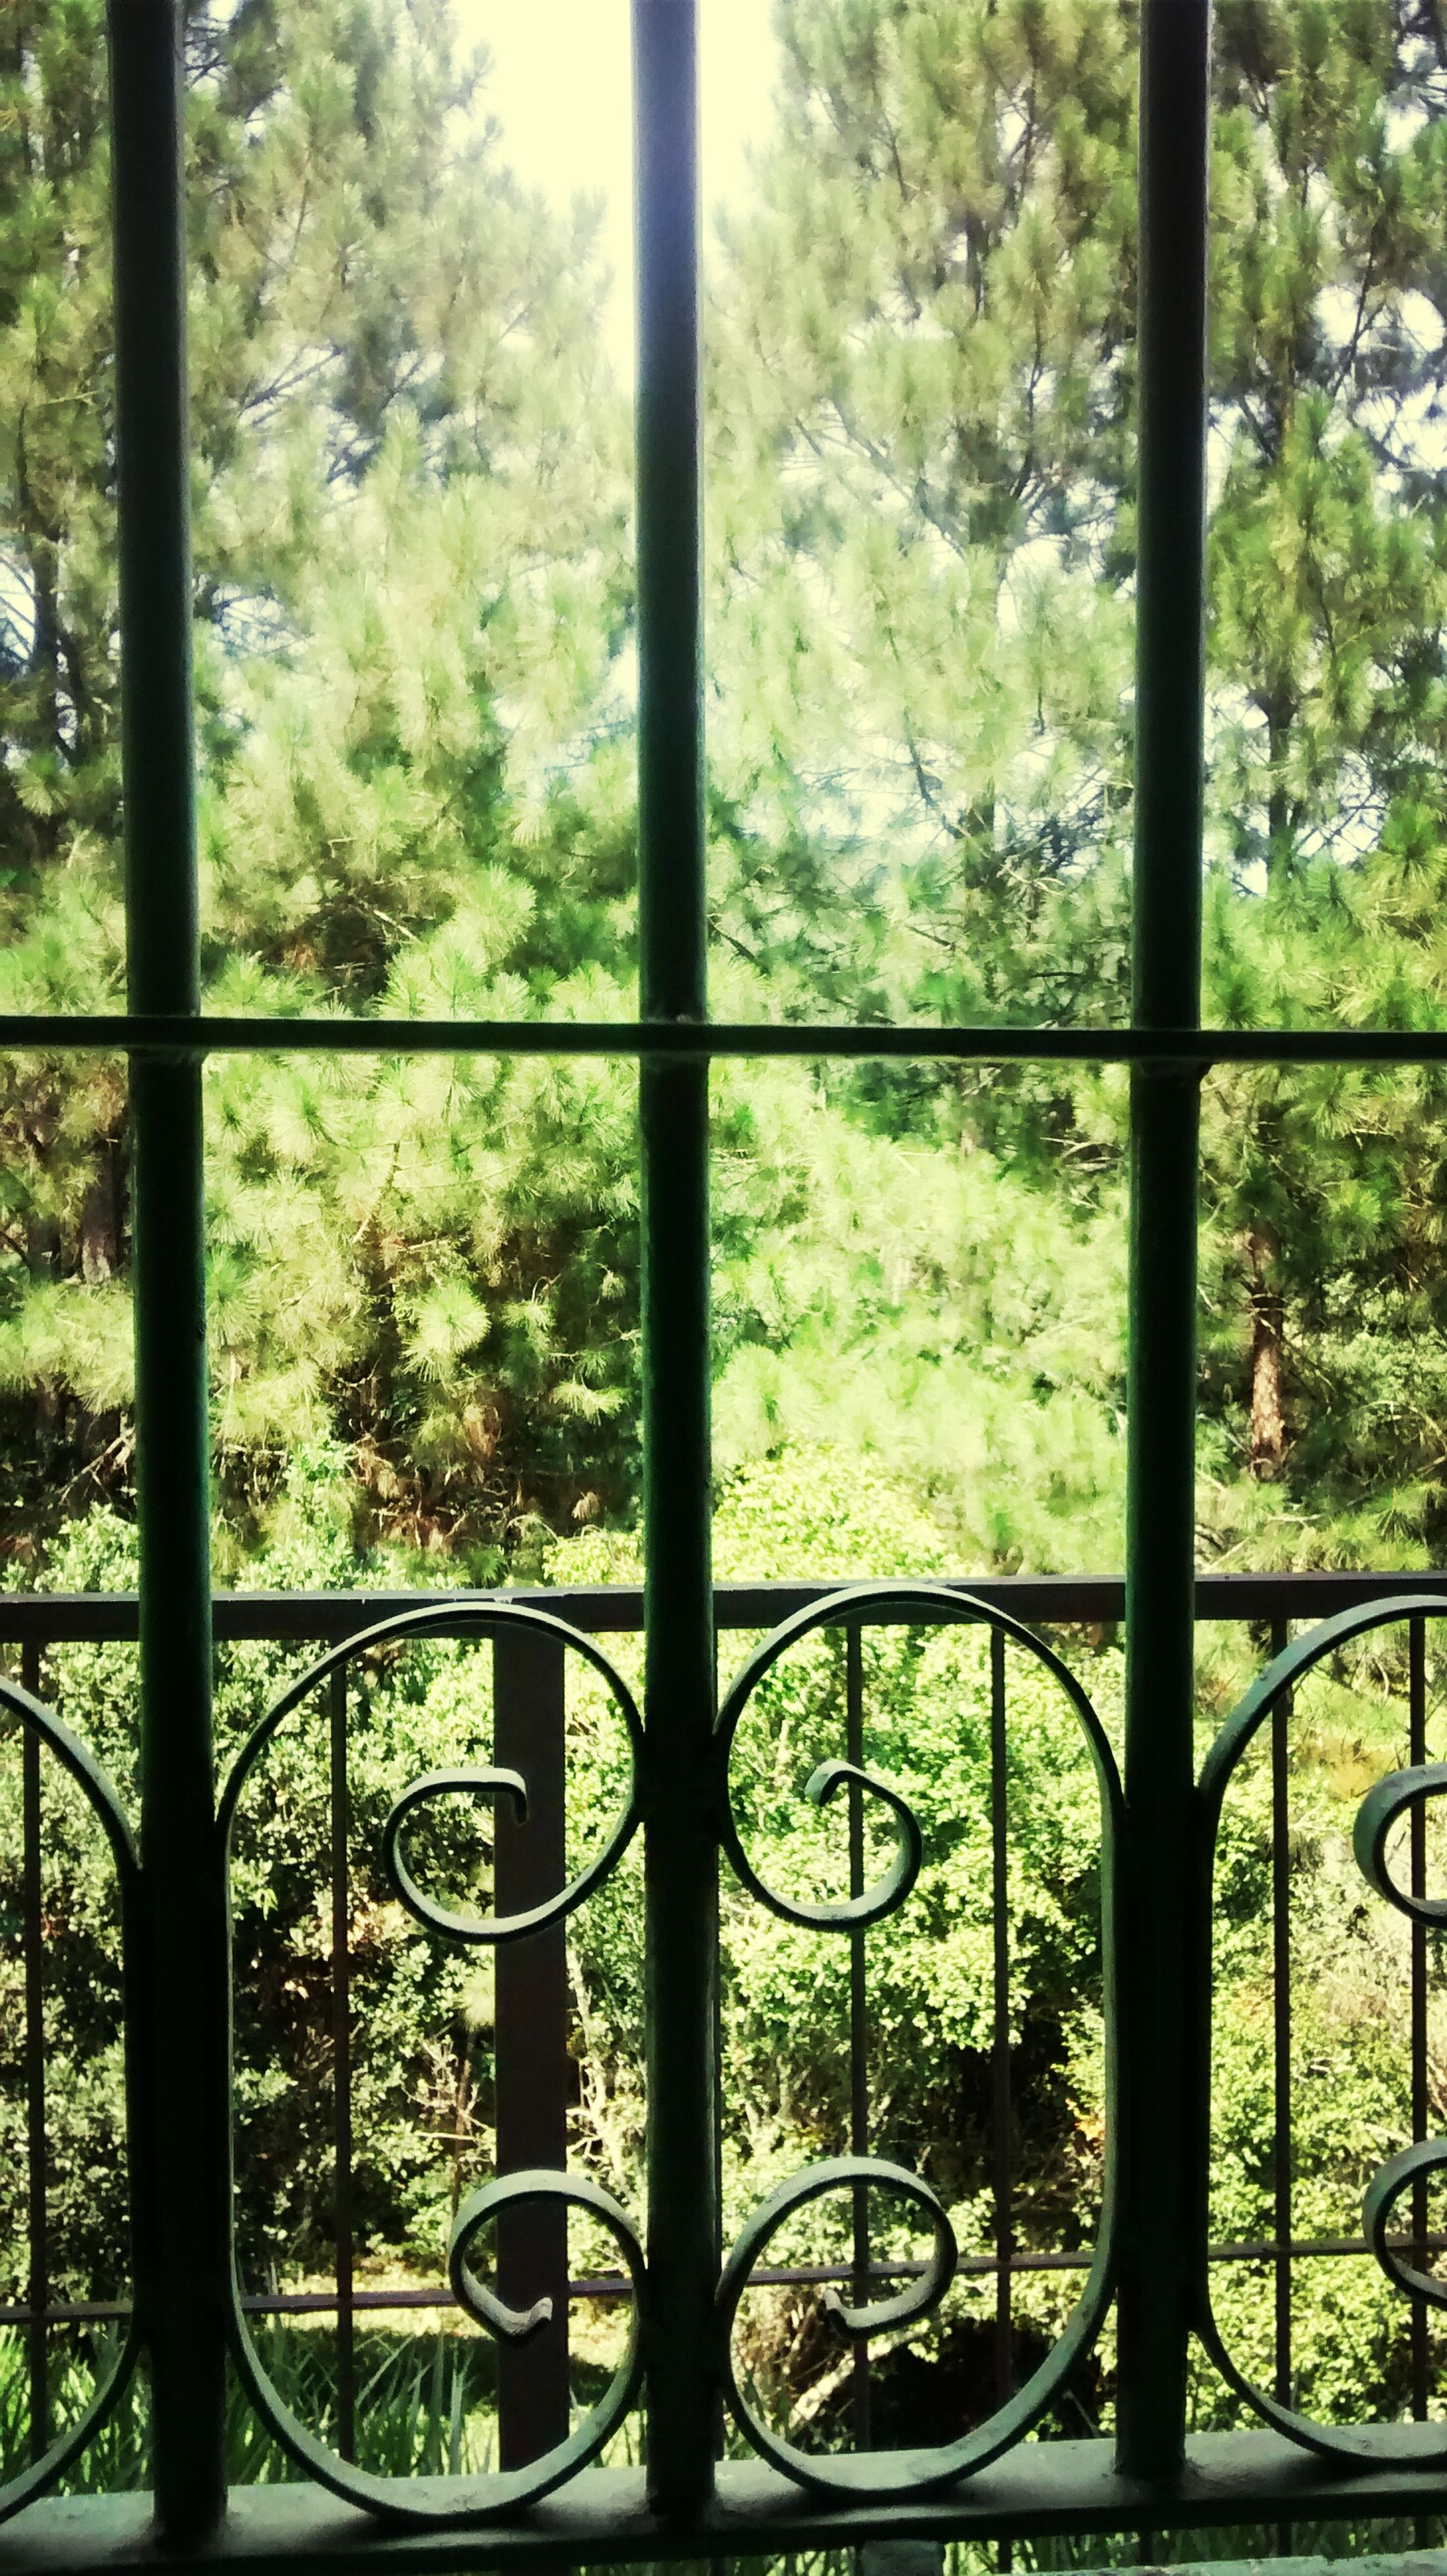 tree, window, indoors, green color, growth, glass - material, transparent, day, metal, nature, sunlight, tree trunk, plant, railing, no people, green, fence, park - man made space, lush foliage, branch